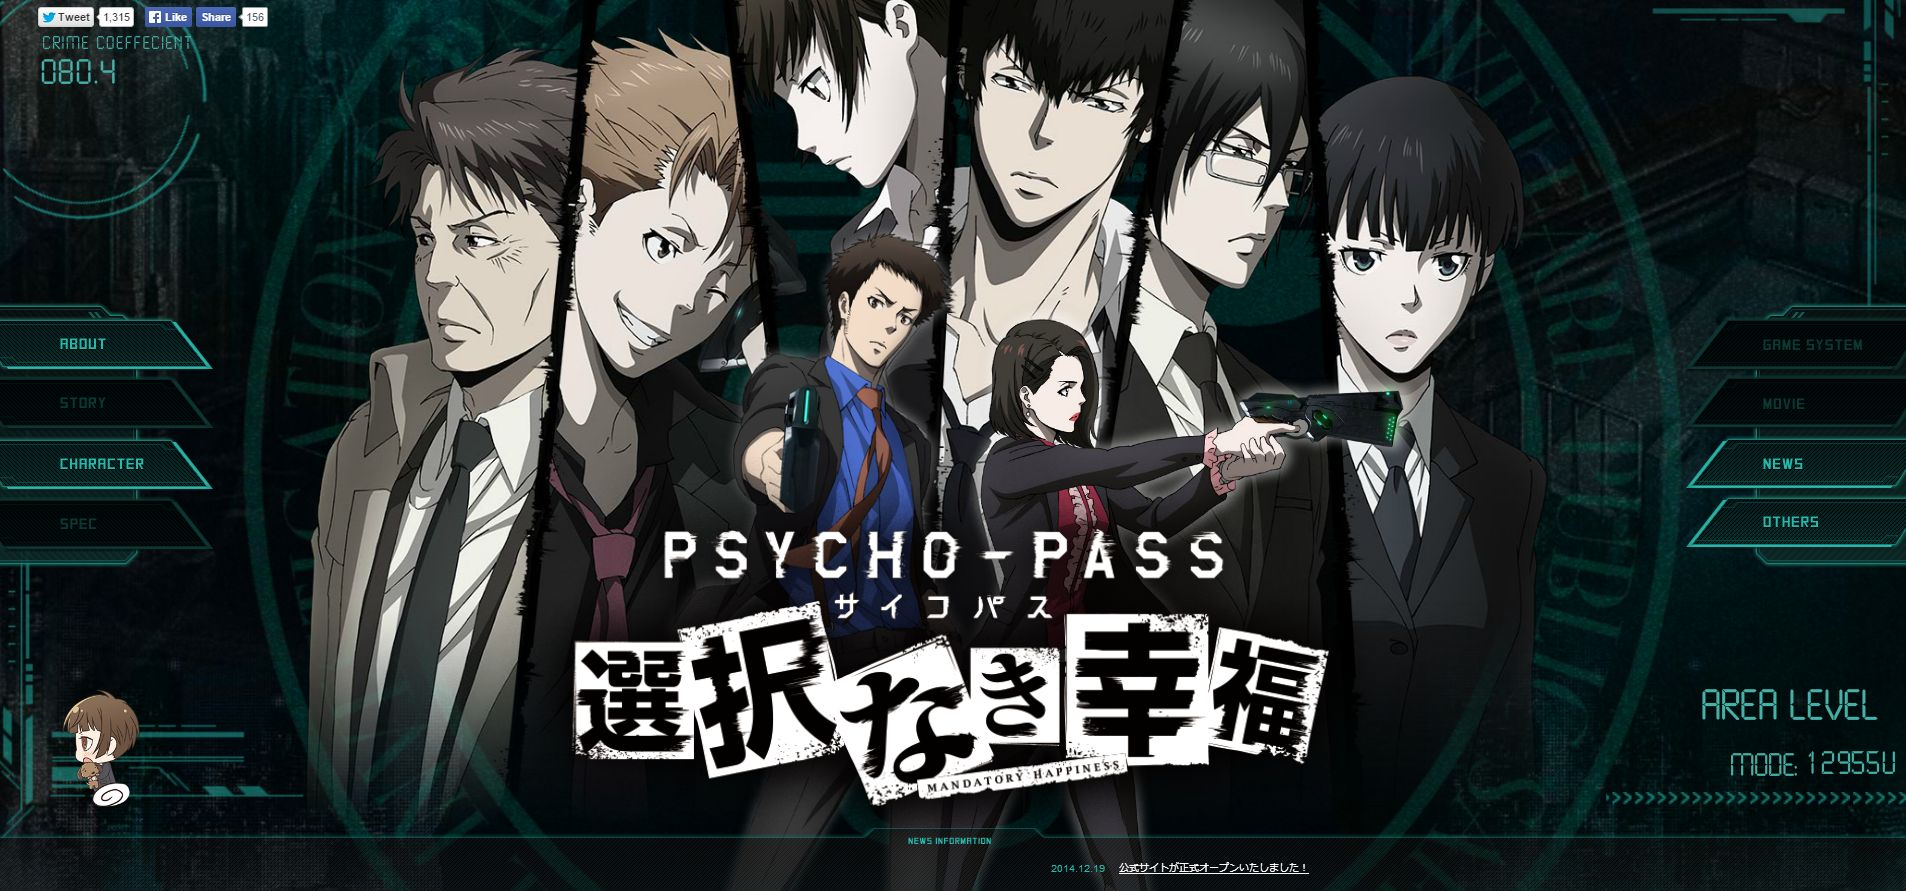 Reverse Falls Will Wallpaper Xbox One Exclusive Psycho Pass Mandatory Happiness Gets